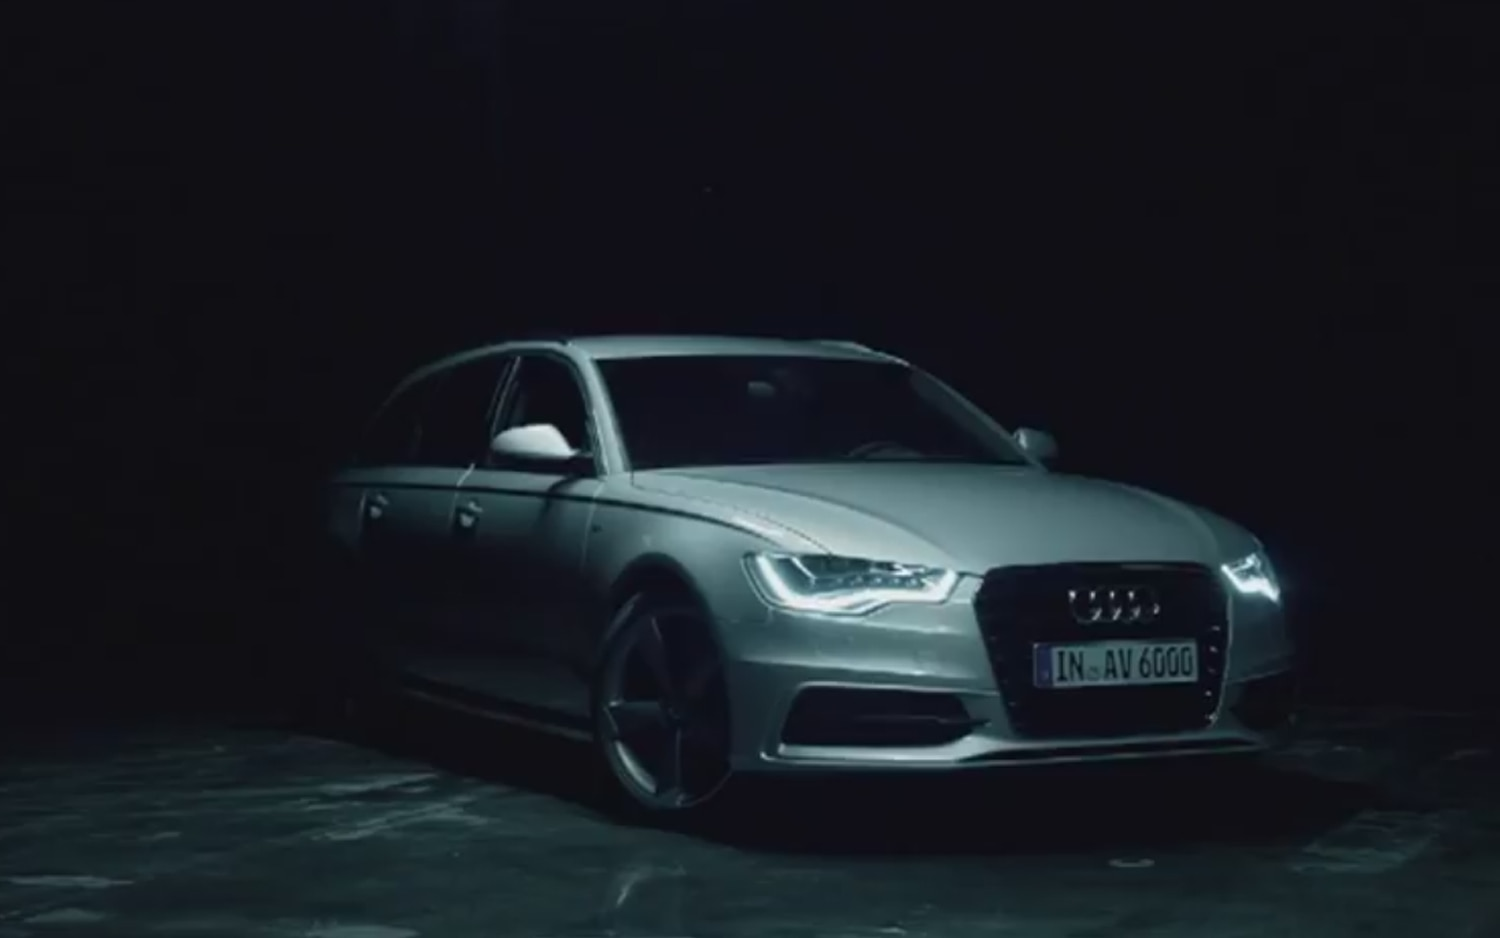 Is Audis New A Avant Commercial RippingOff Chrysler - Audi commercial